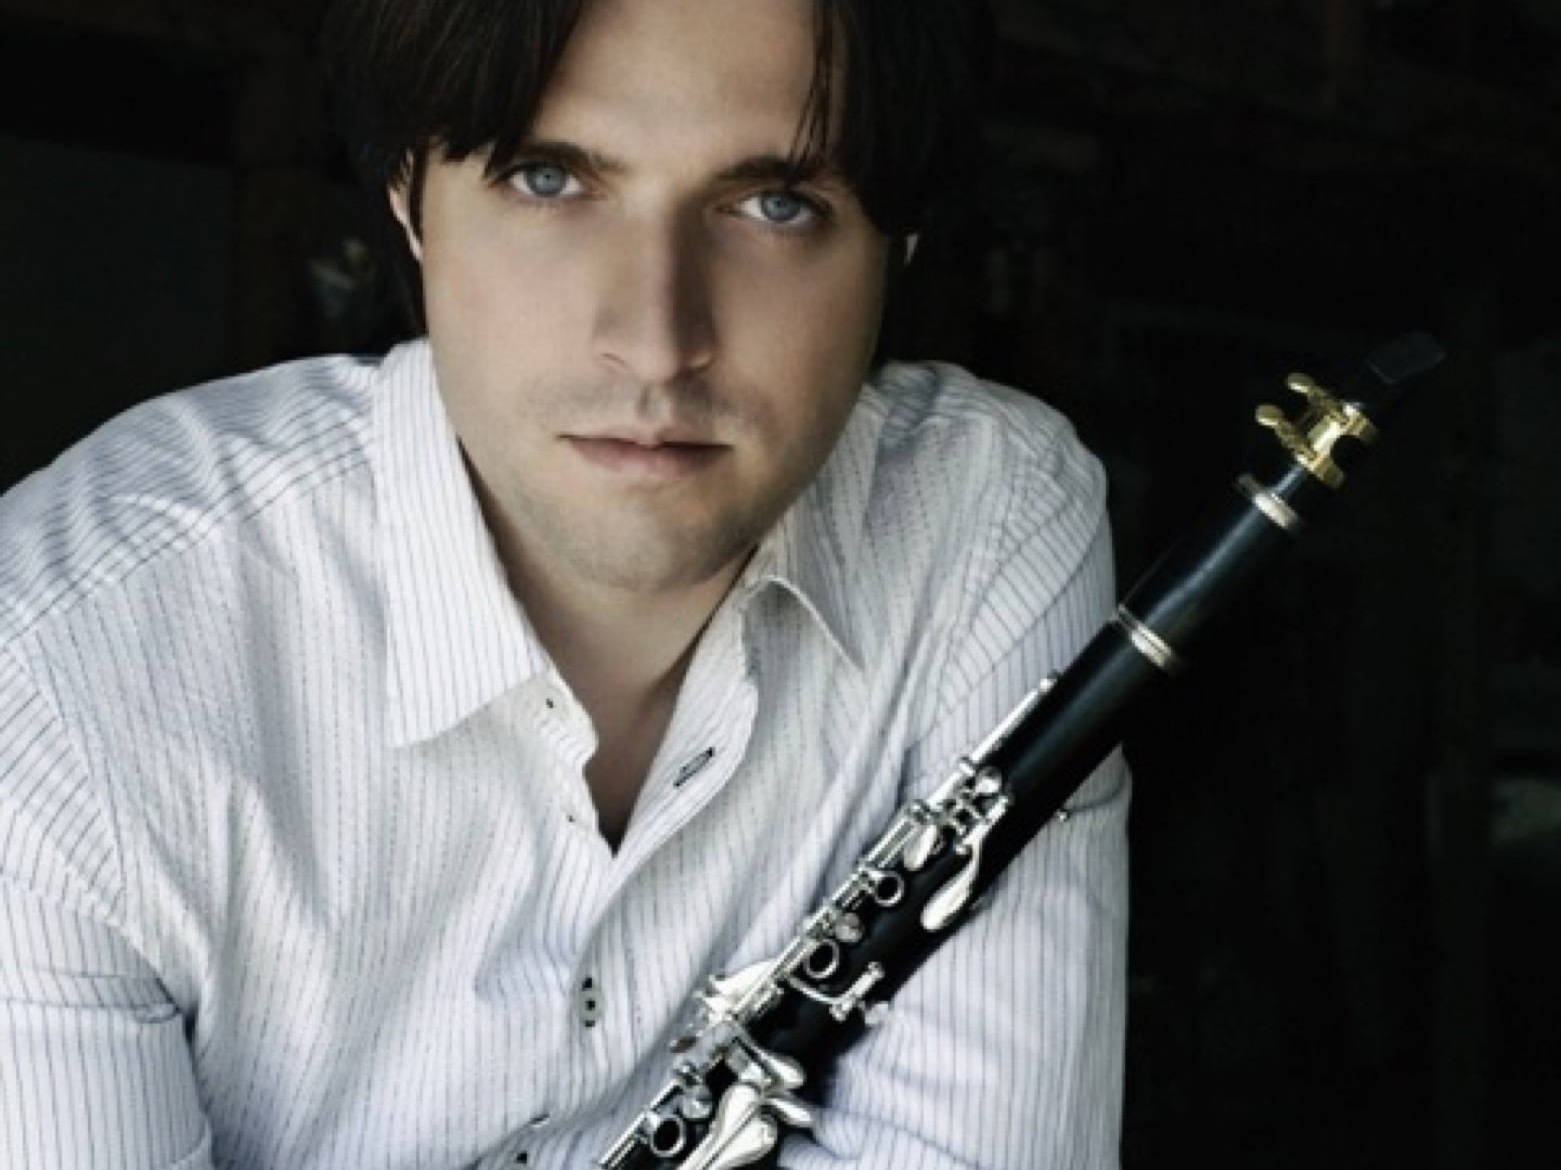 Clarinetastik! with the Bergmann Duo - April 1, 2020 - 10:30amInternationally acclaimed Spanish clarinet virtuoso, Jose Franch-Ballester will present some of his most beloved works for the clarinet and piano. The multi-award-winning clarinet maestro will dazzle with his technical wizardry, effortless musicianship and infectious enthusiasm.PLEASE NOTE: This performance is on a Wednesday morning.